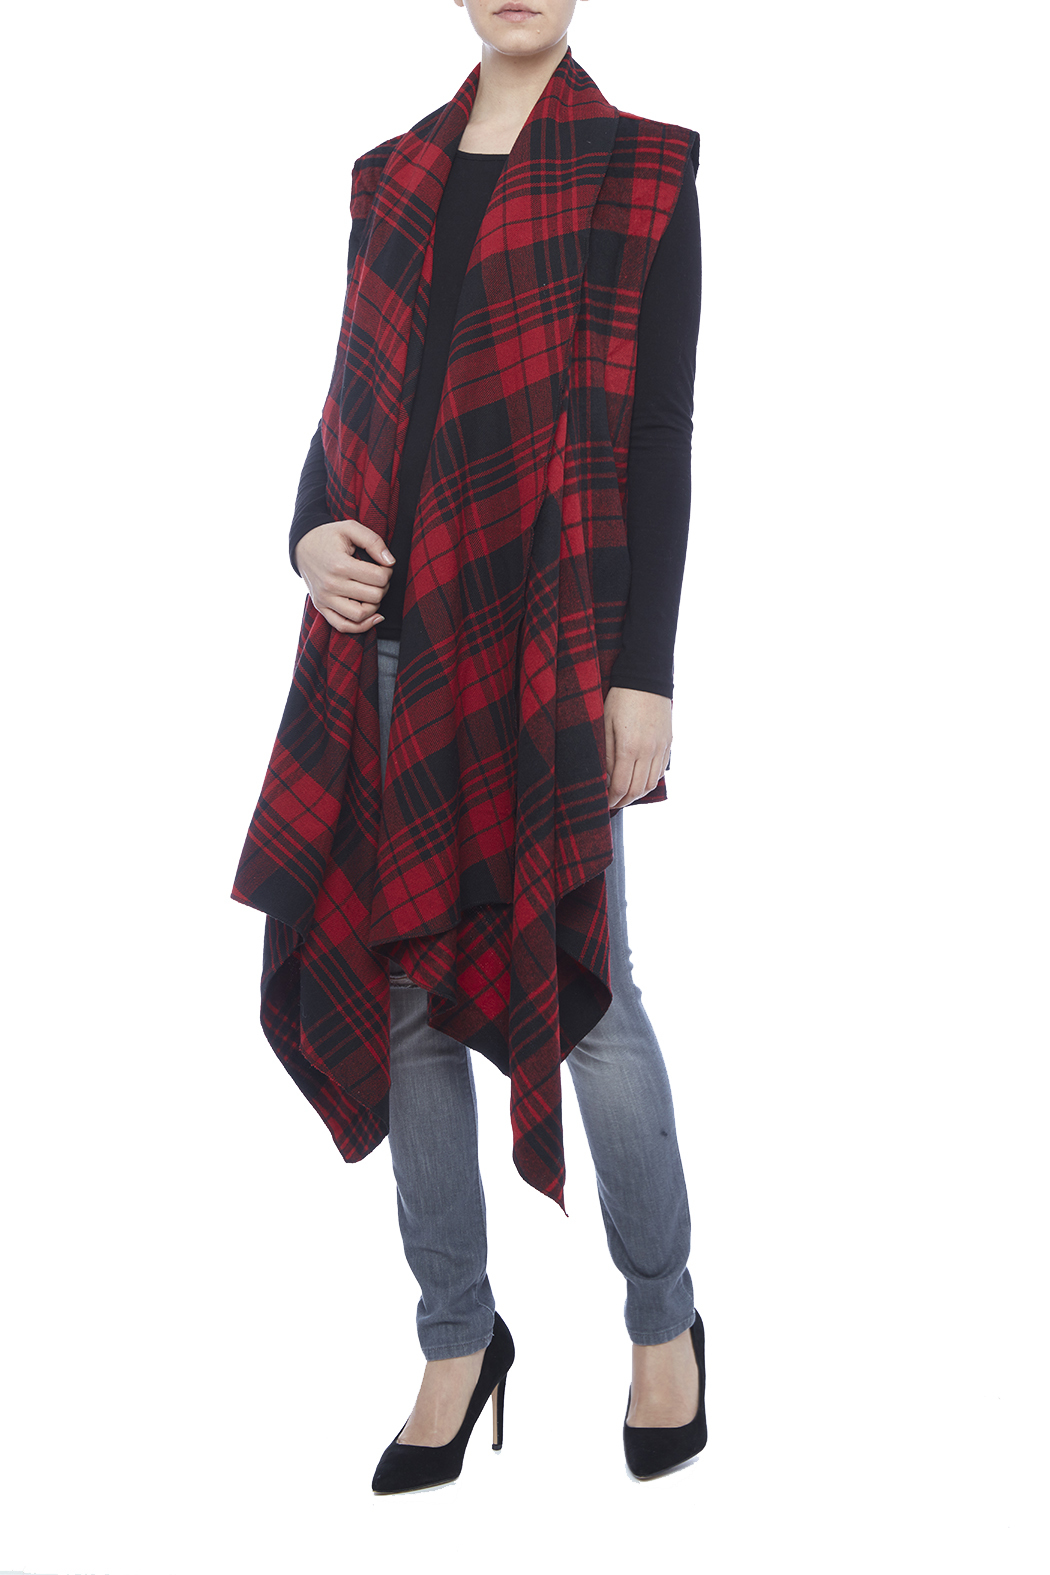 Renee C. Red Plaid Vest - Main Image